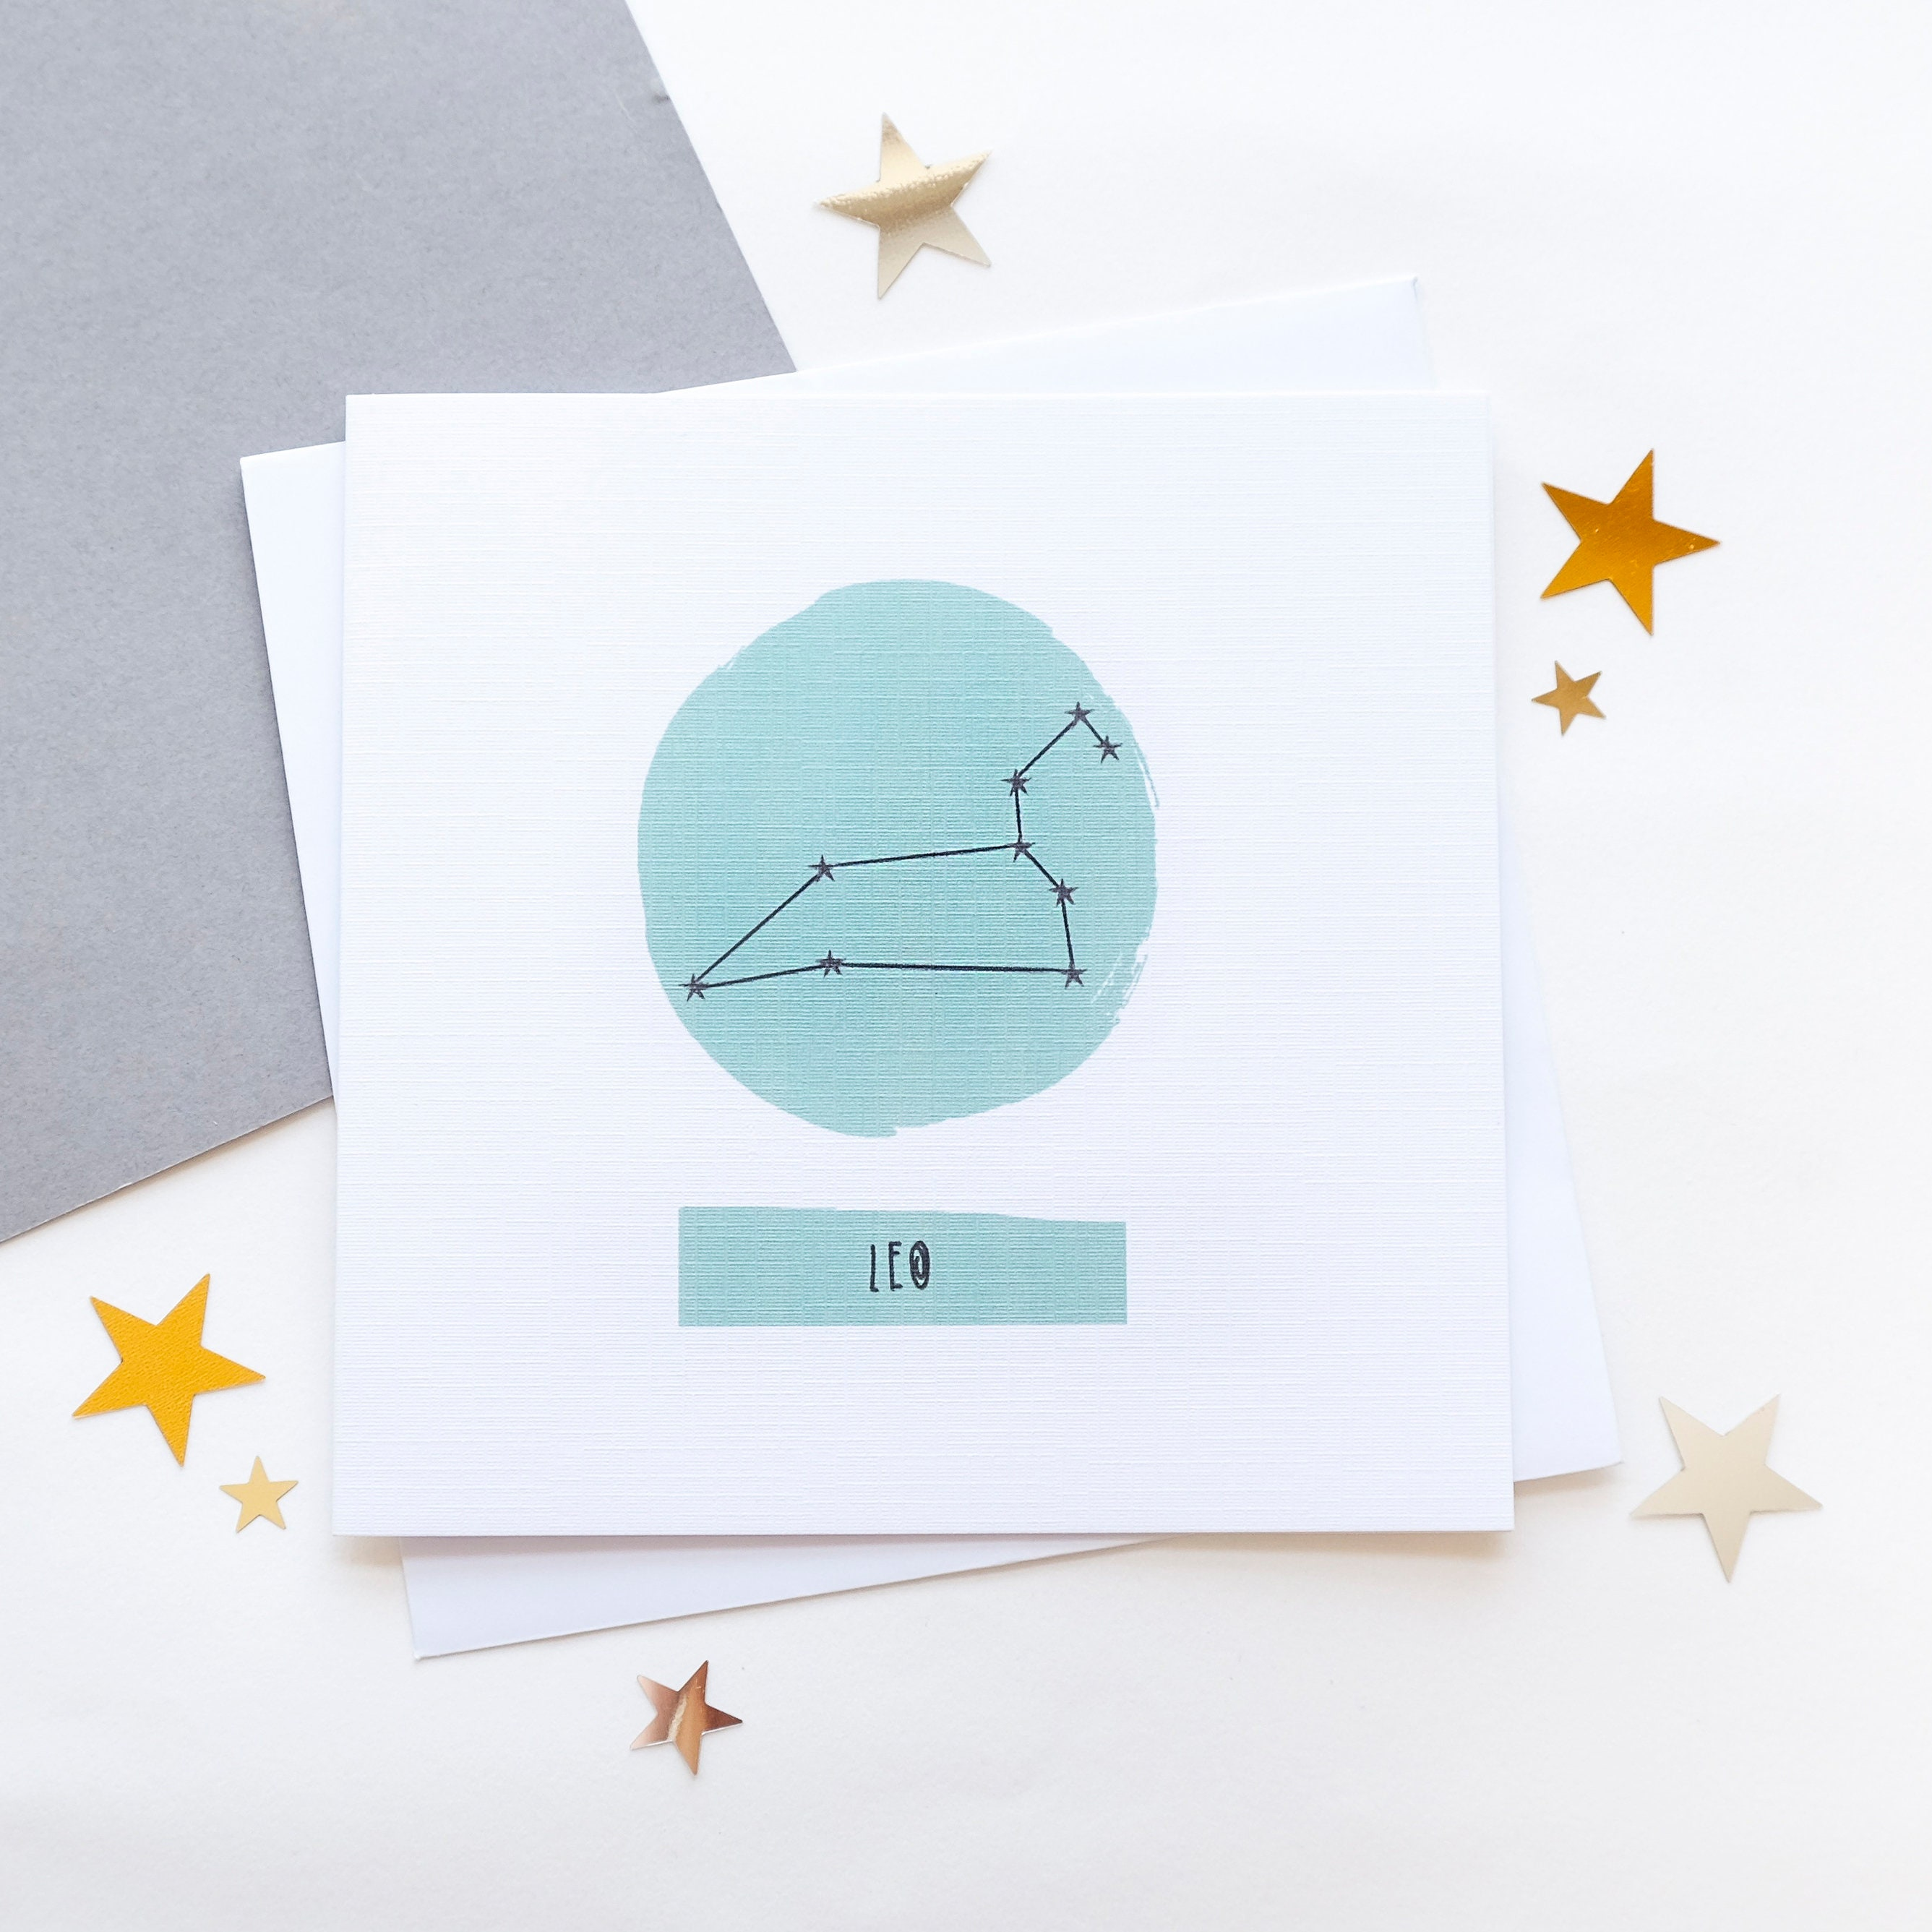 Leo Star Sign Zodiac Birthday Card July August Constellation Chart Astrology Horoscope